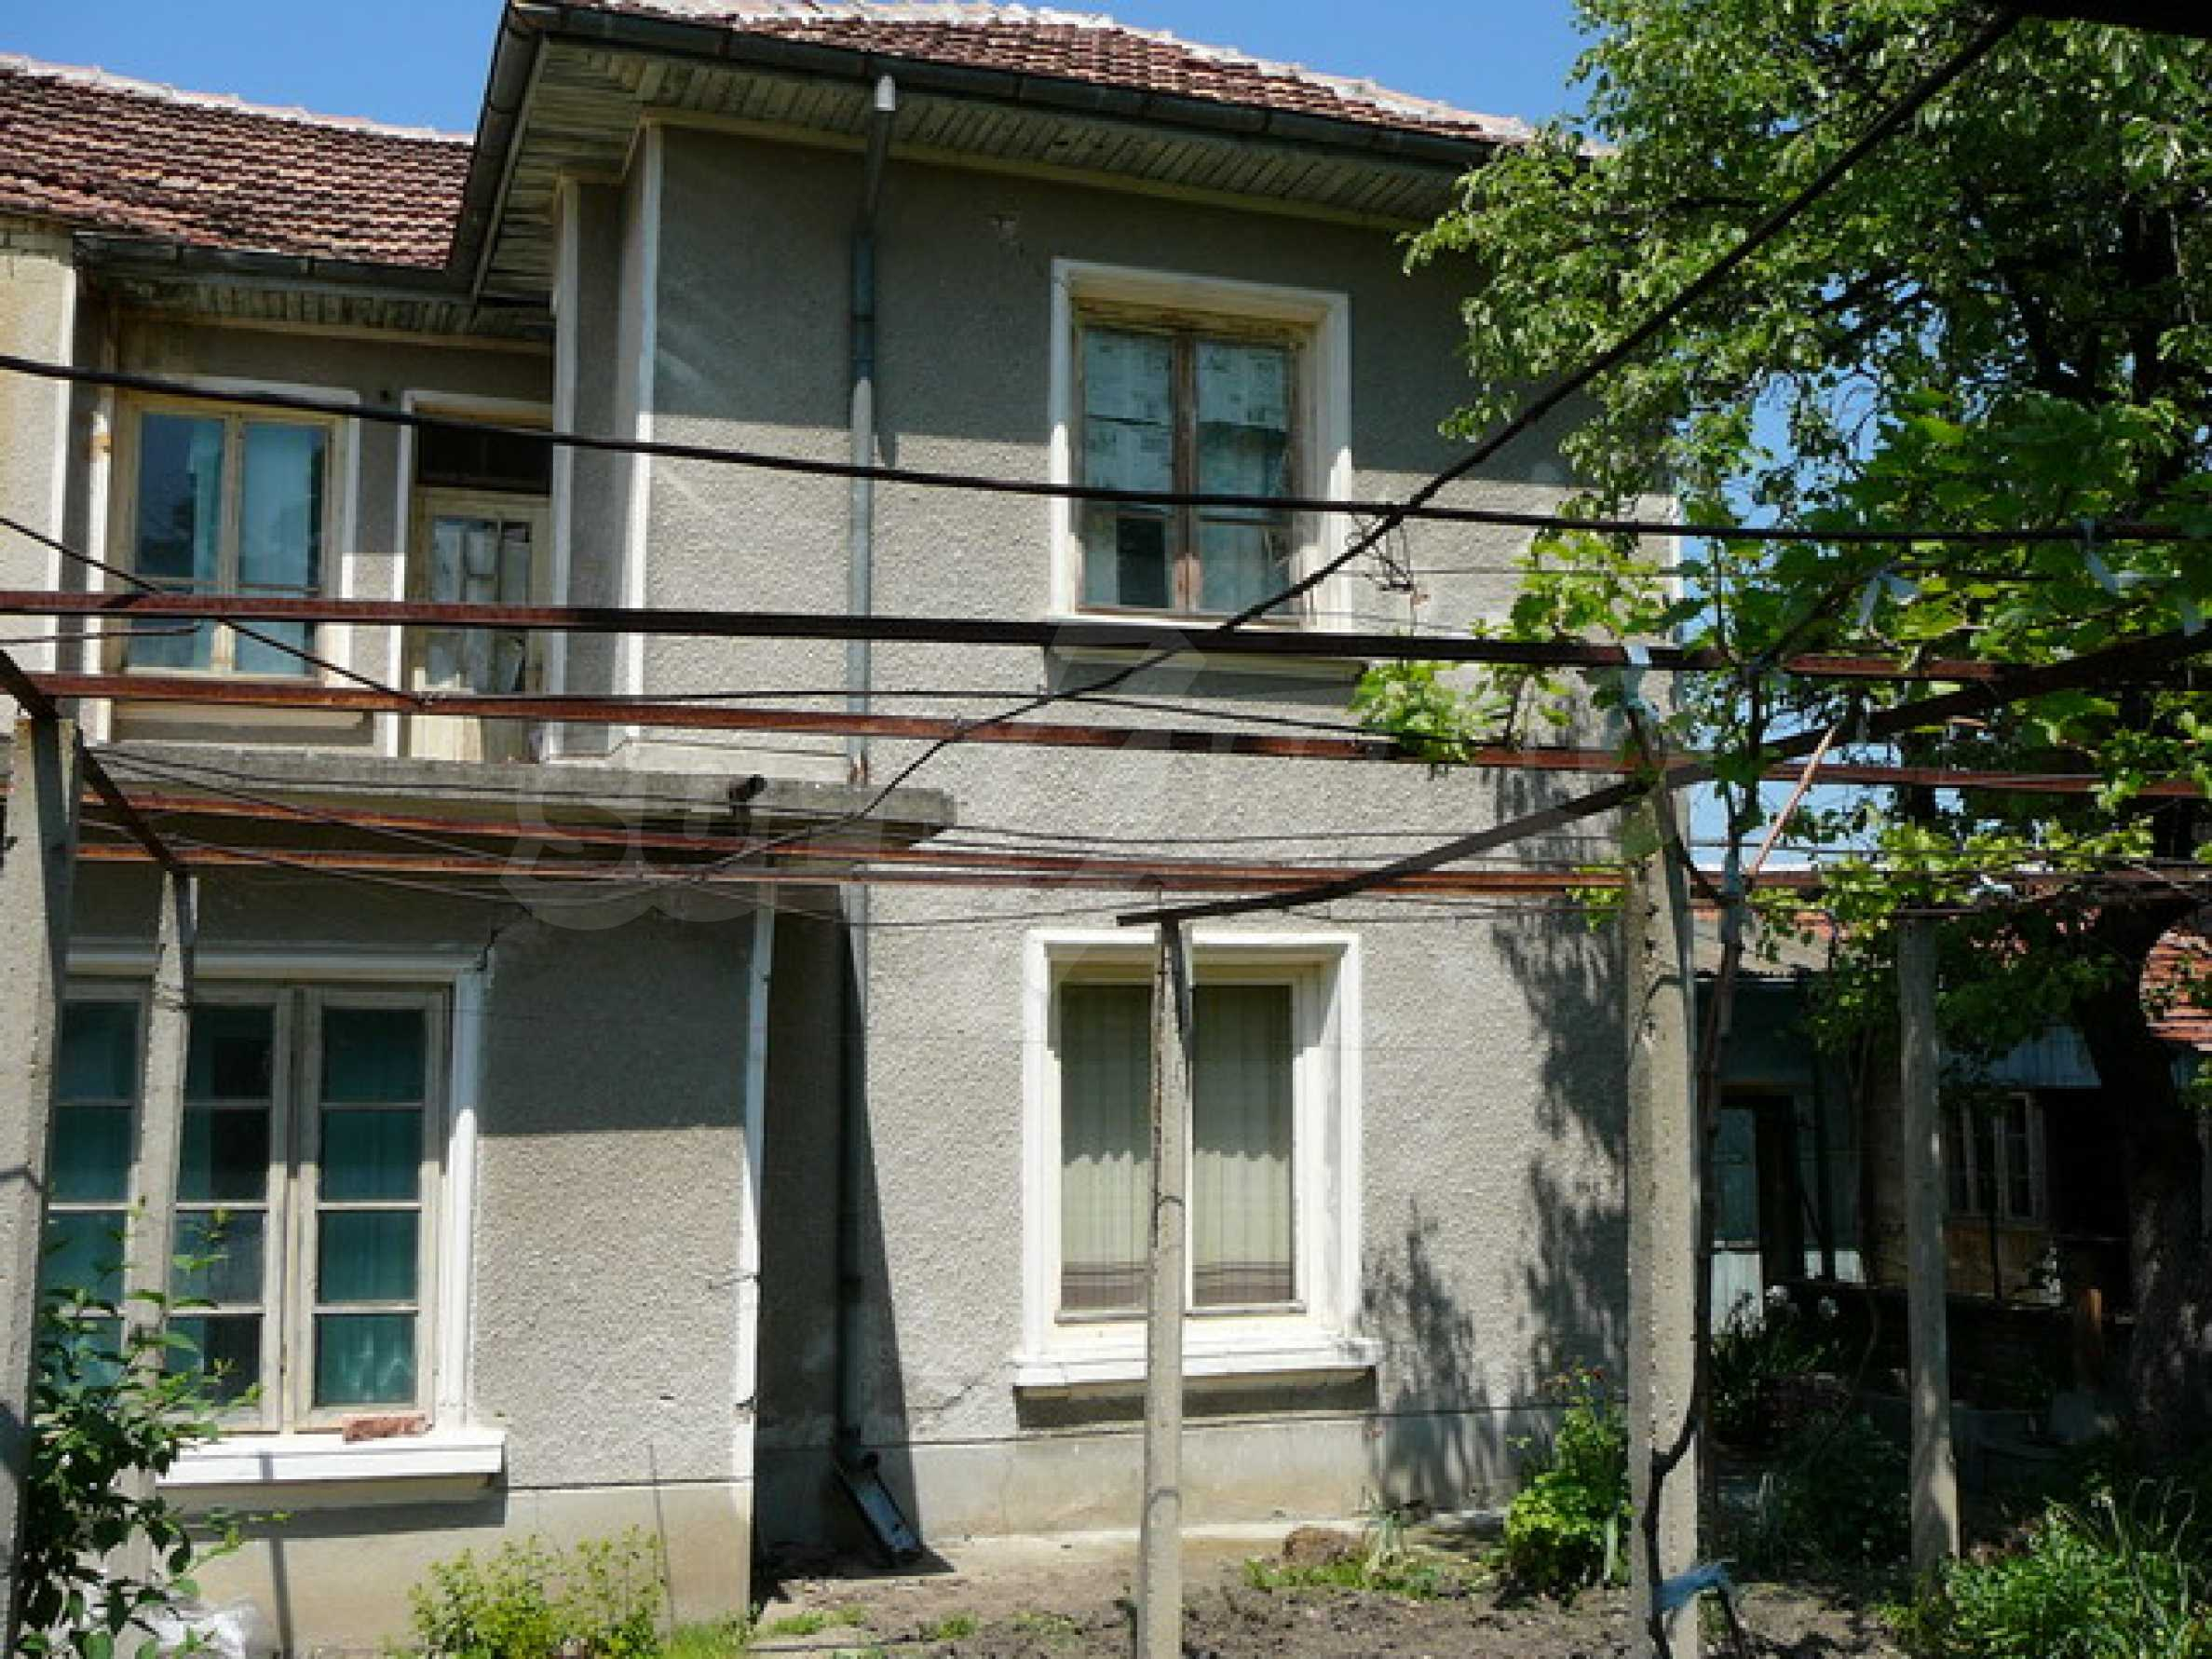 House for sale in a village close to Veliko Tarnovo 42